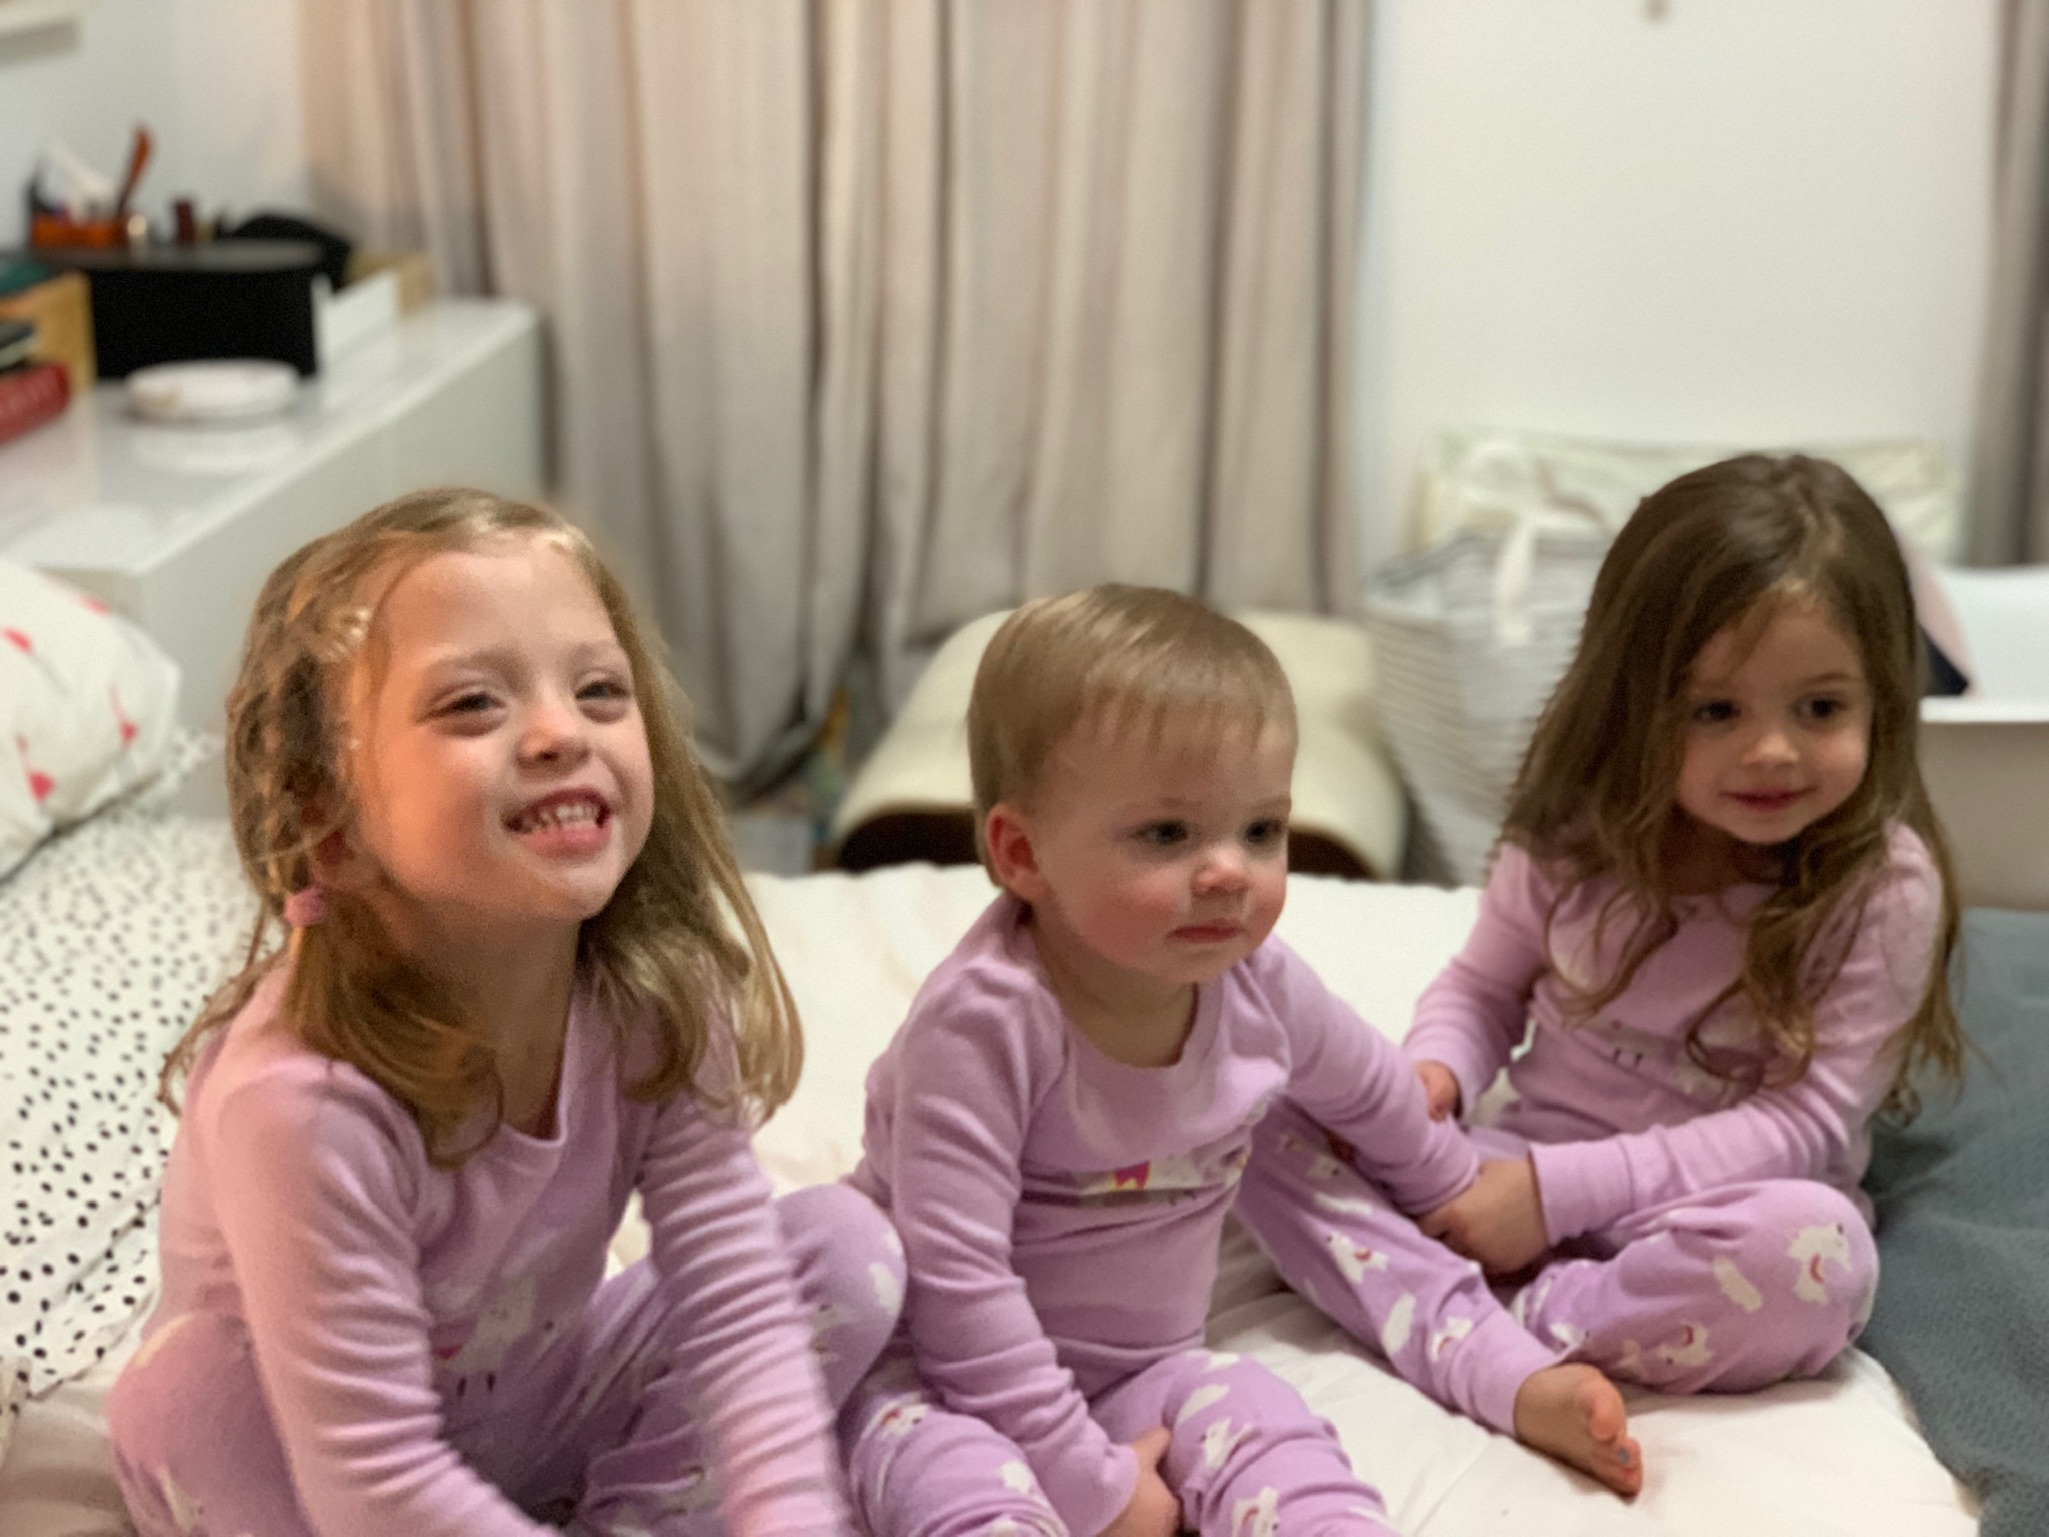 New Year's Eve with the girls in matching PJ's